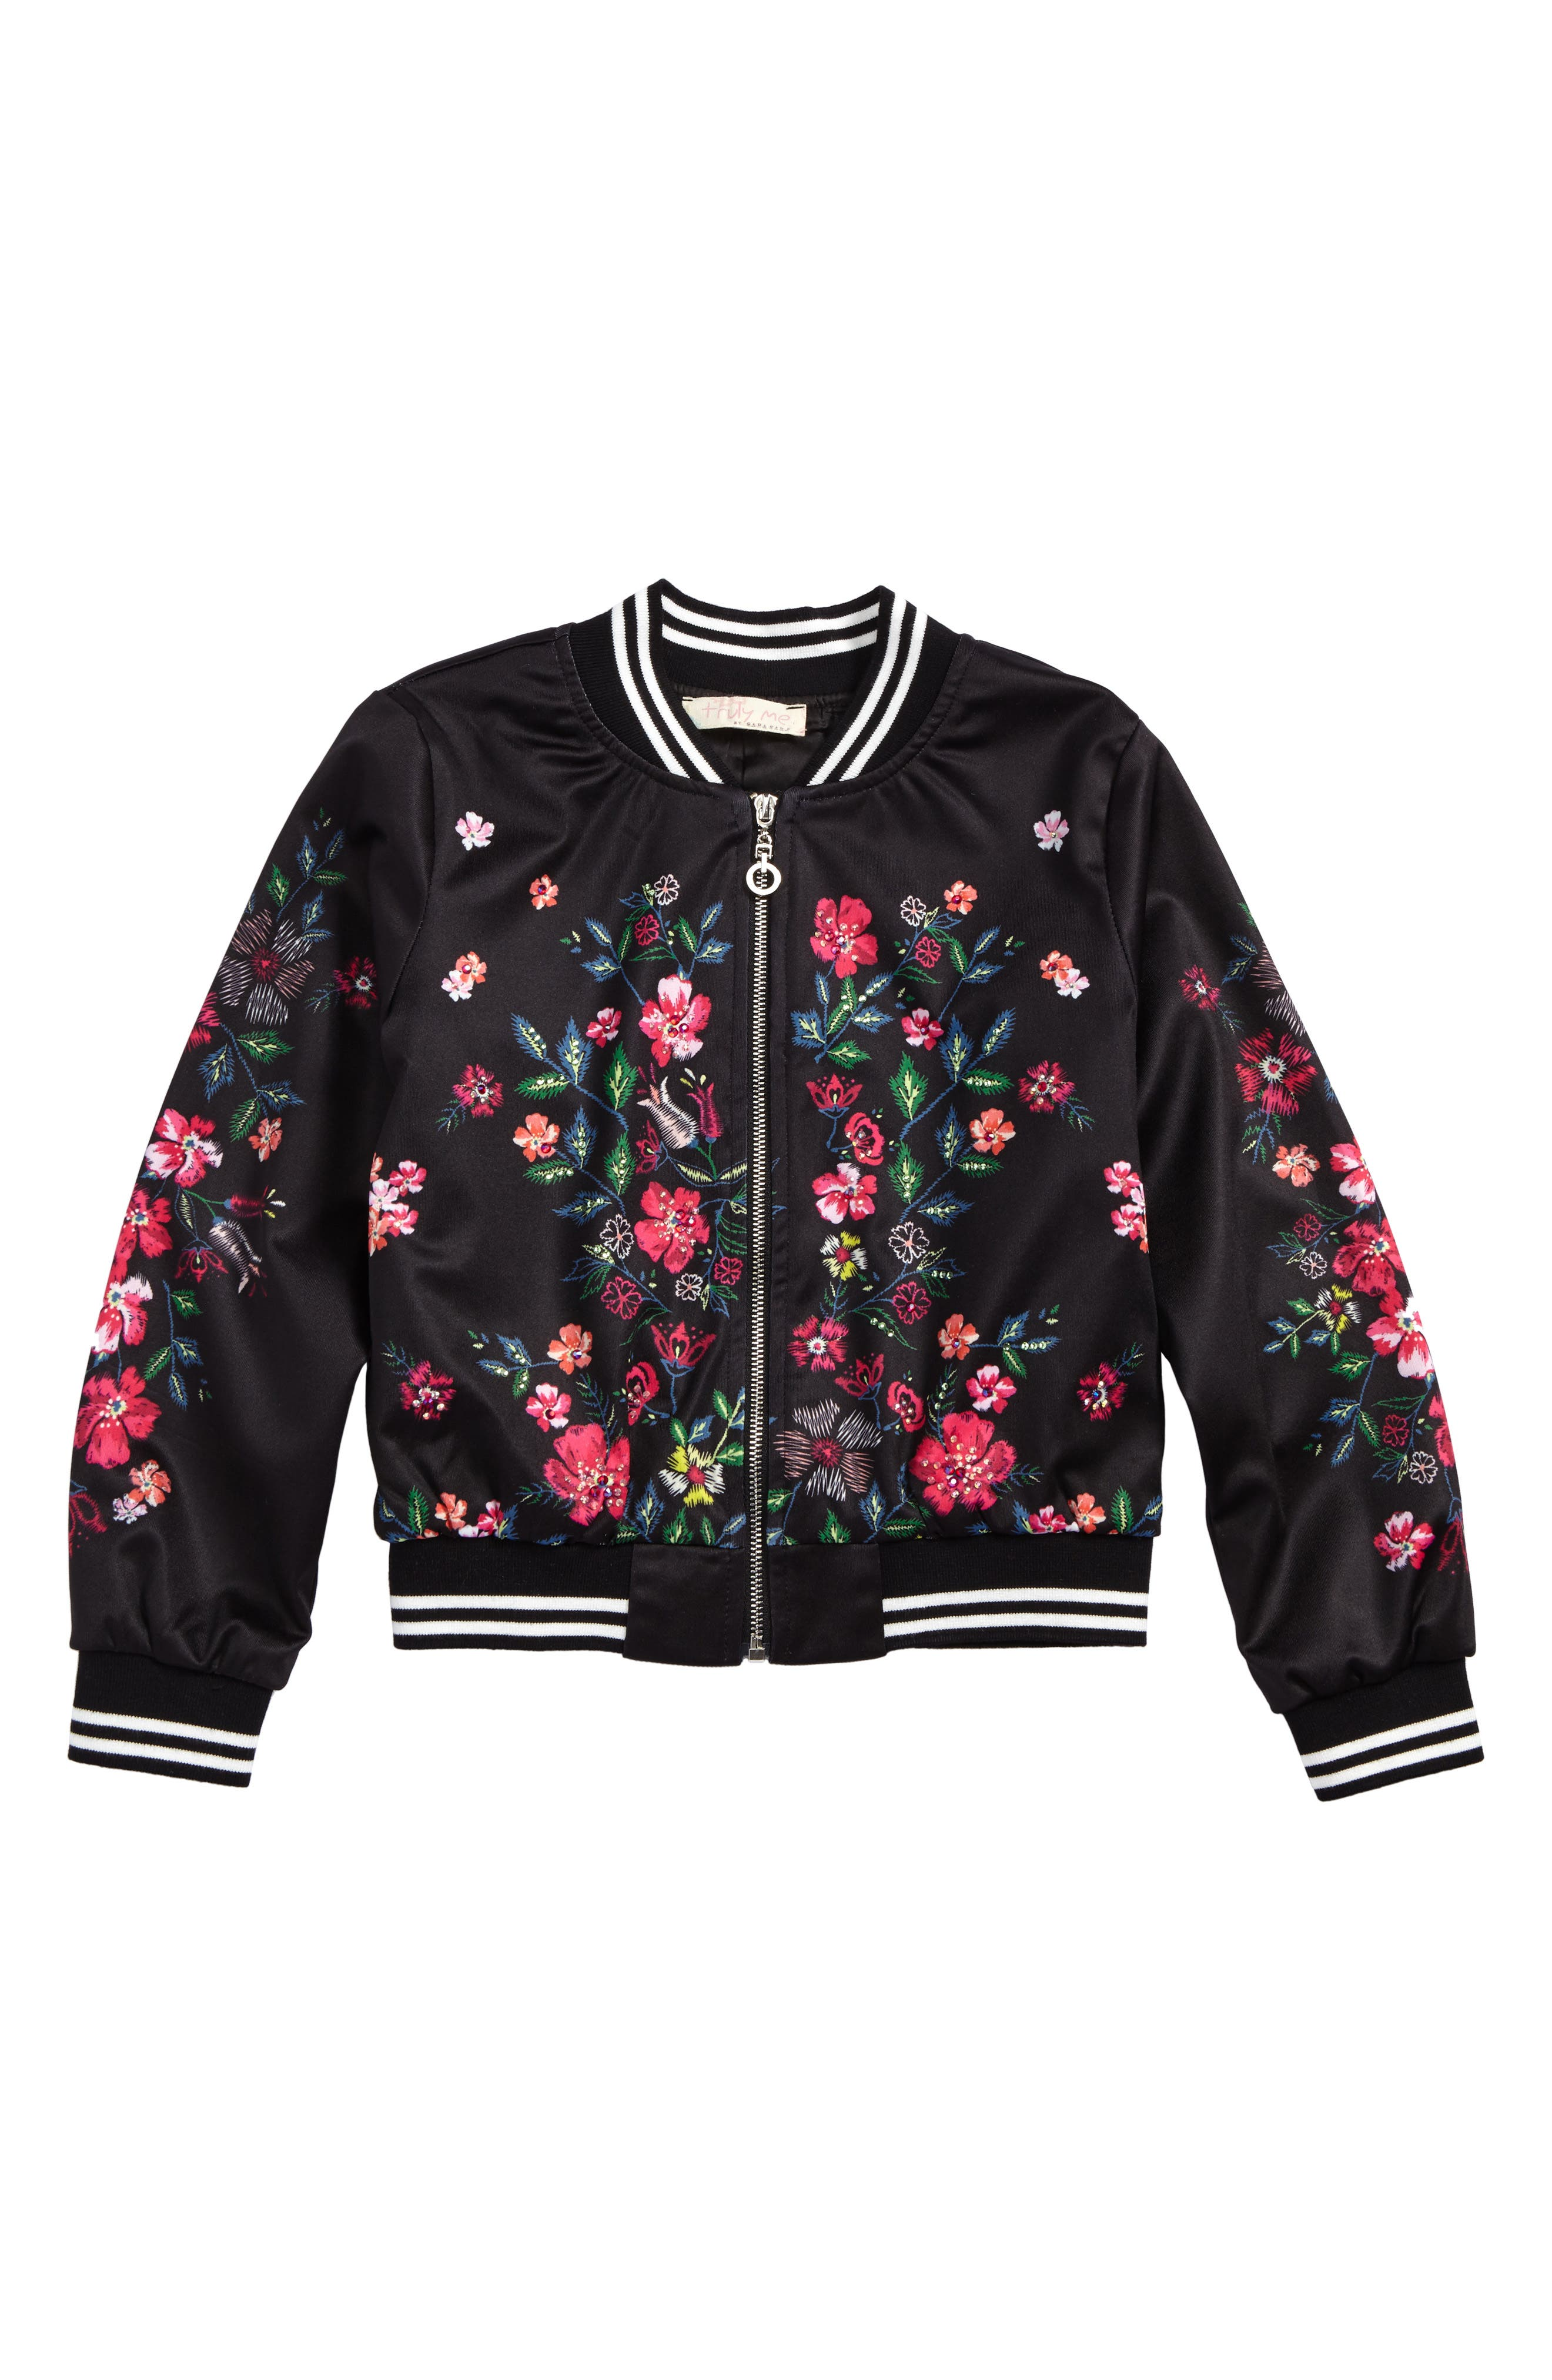 Alternate Image 1 Selected - Truly Me Floral Print Bomber Jacket (Toddler Girls & Little Girls)